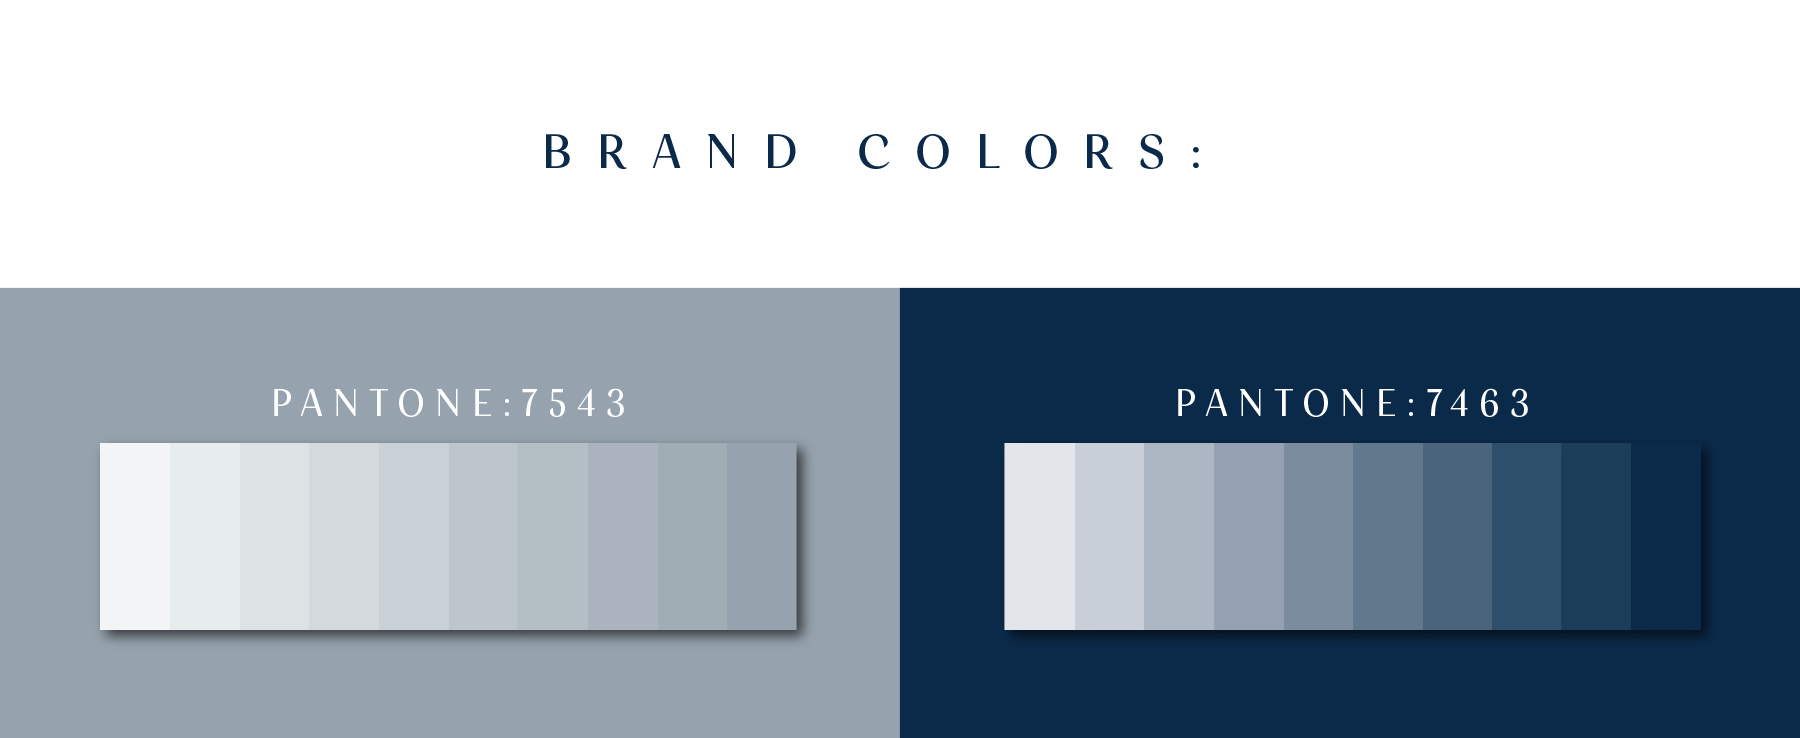 bortz-brand-colors